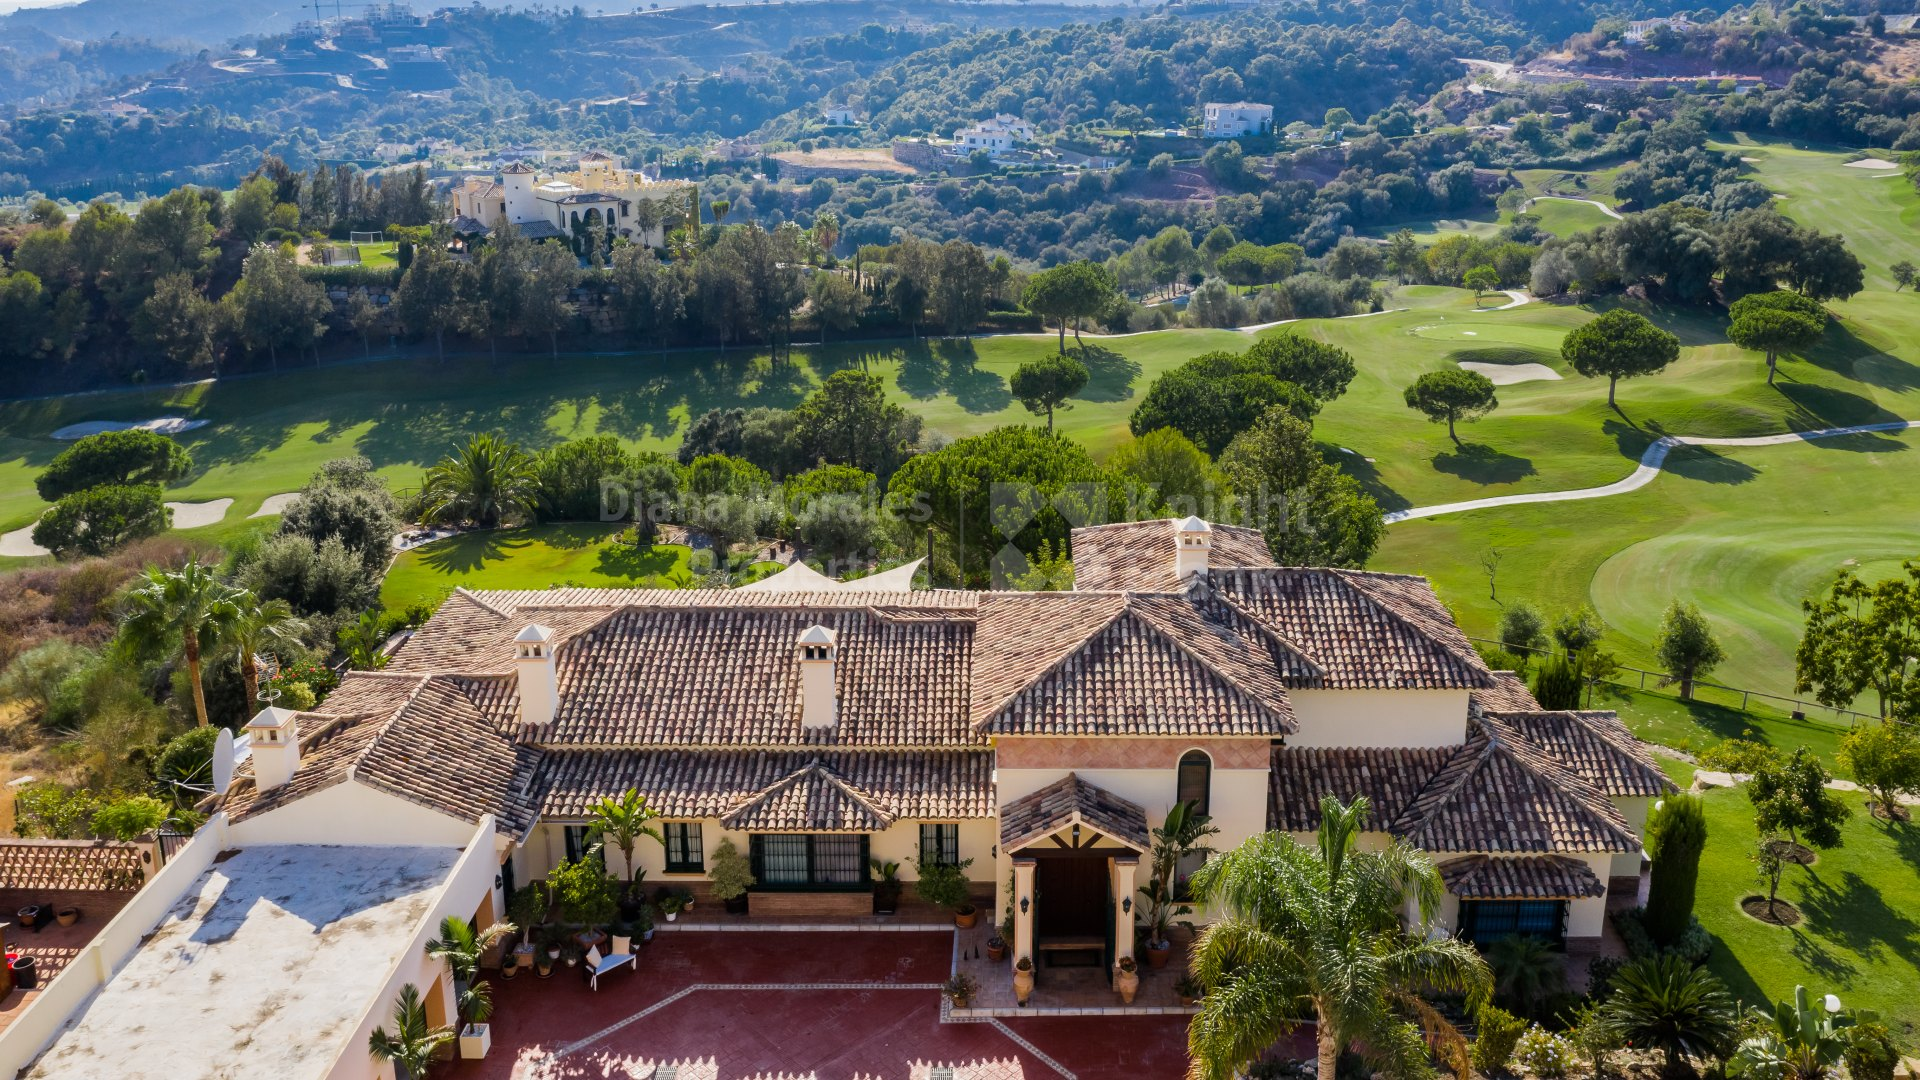 Marbella Club Golf Resort, Vistas al golf en un ambiente de montaña